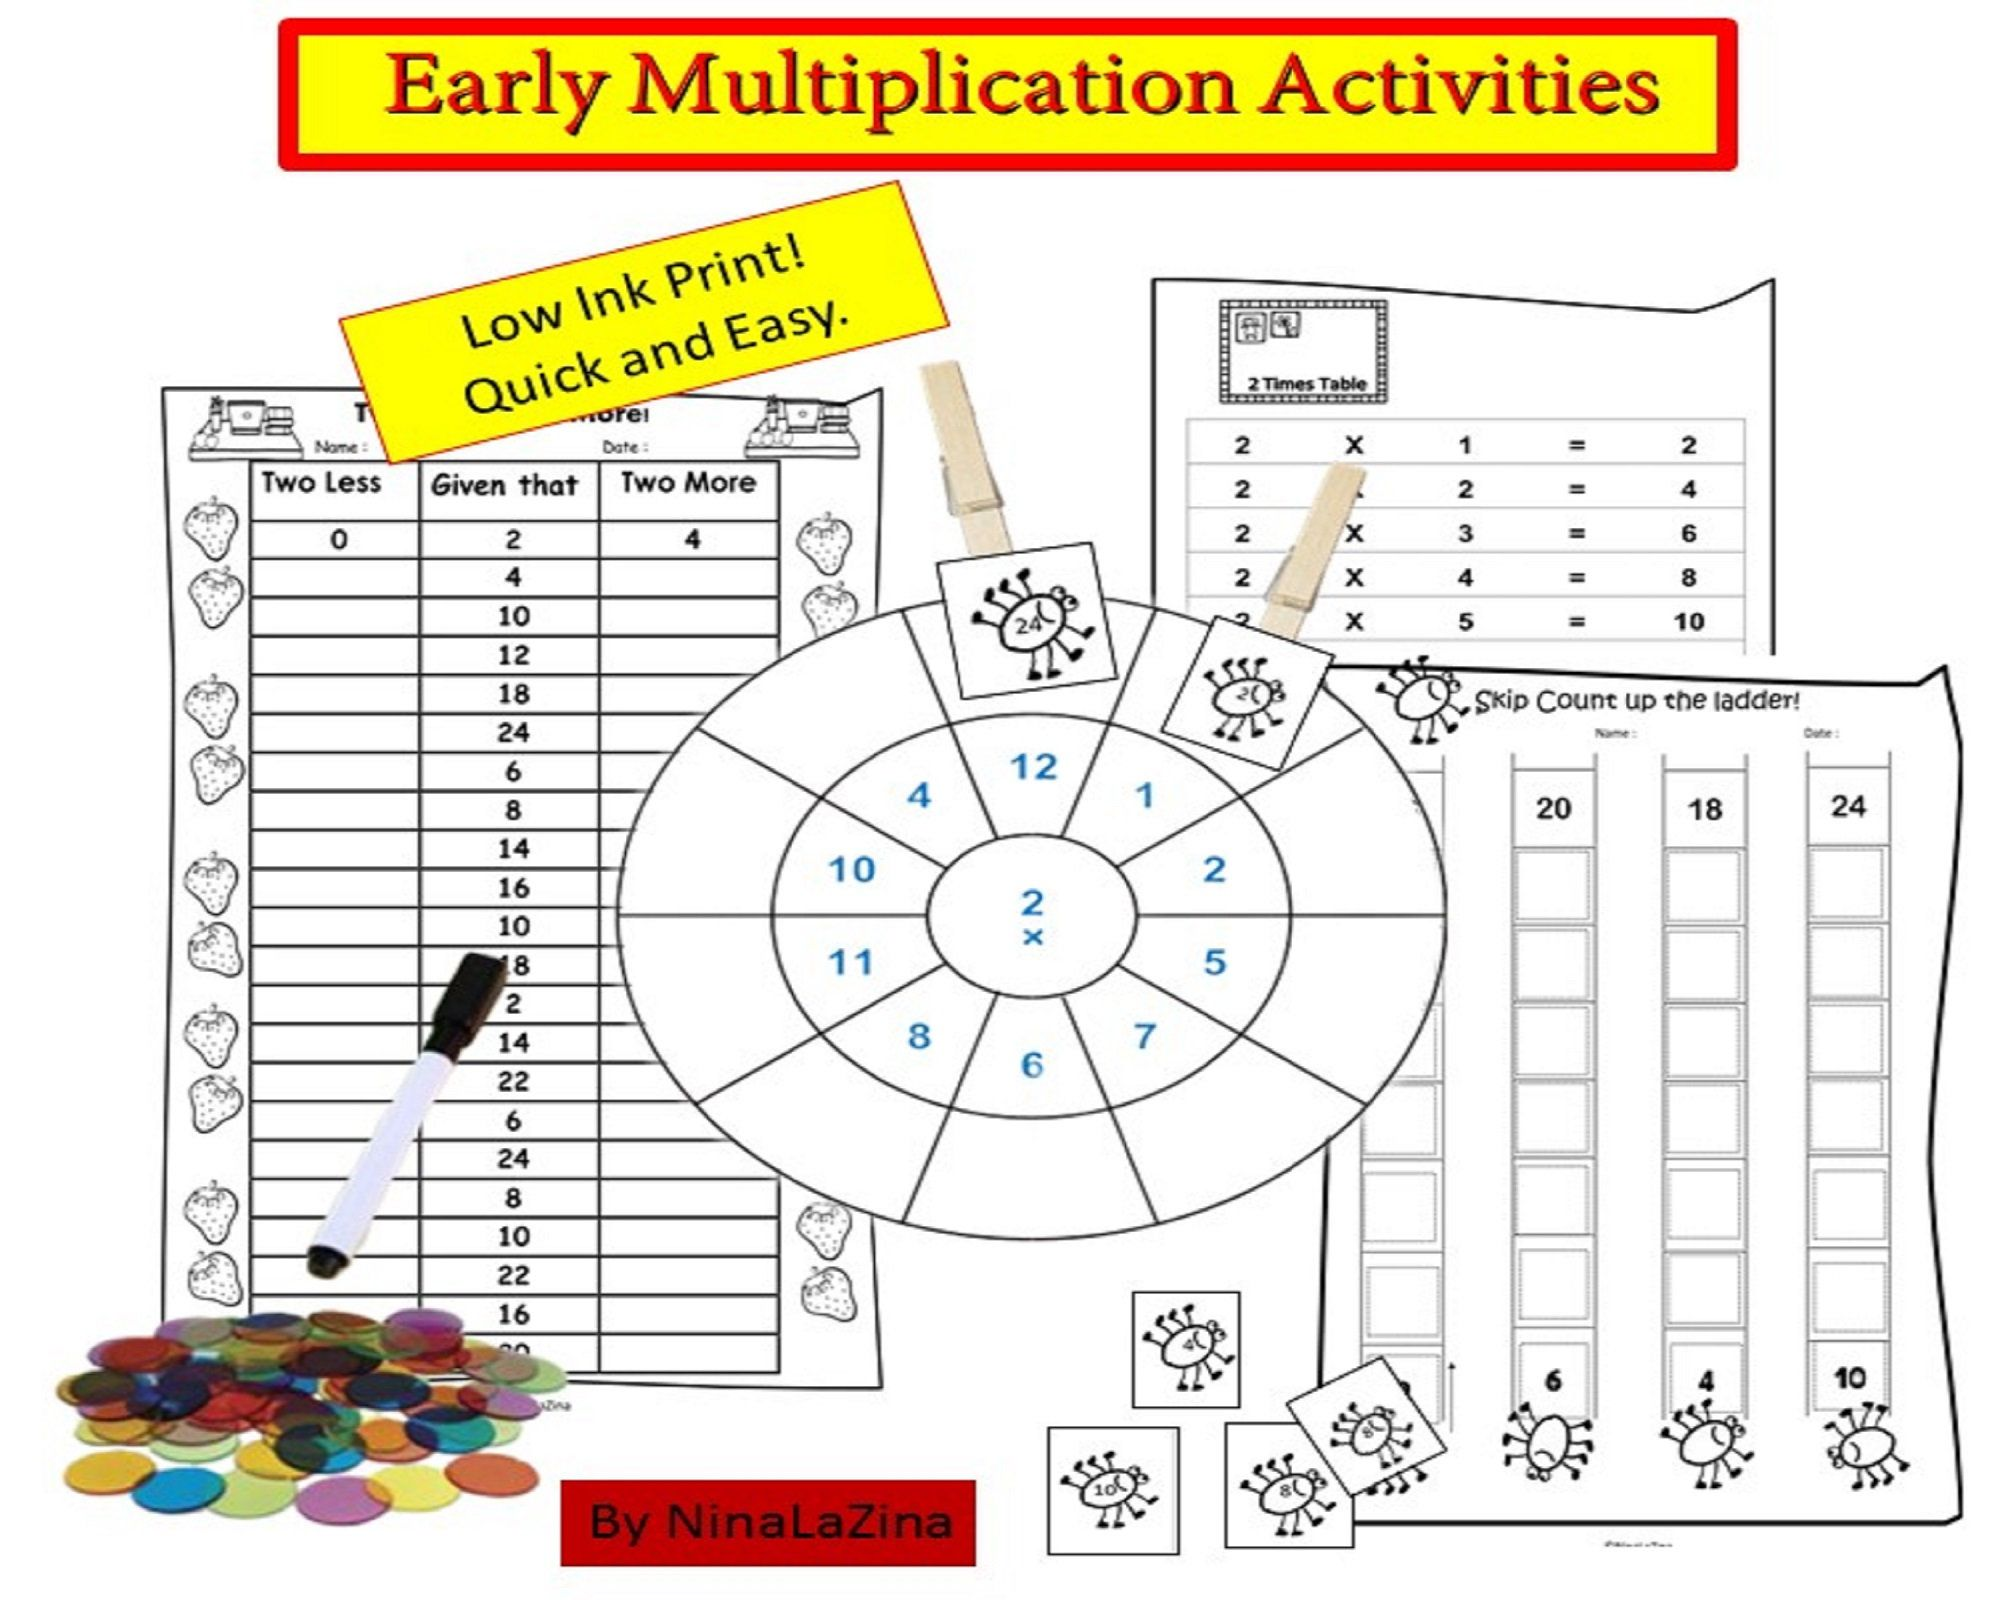 Educational Printable Activities Games And Puzzles Eyfs